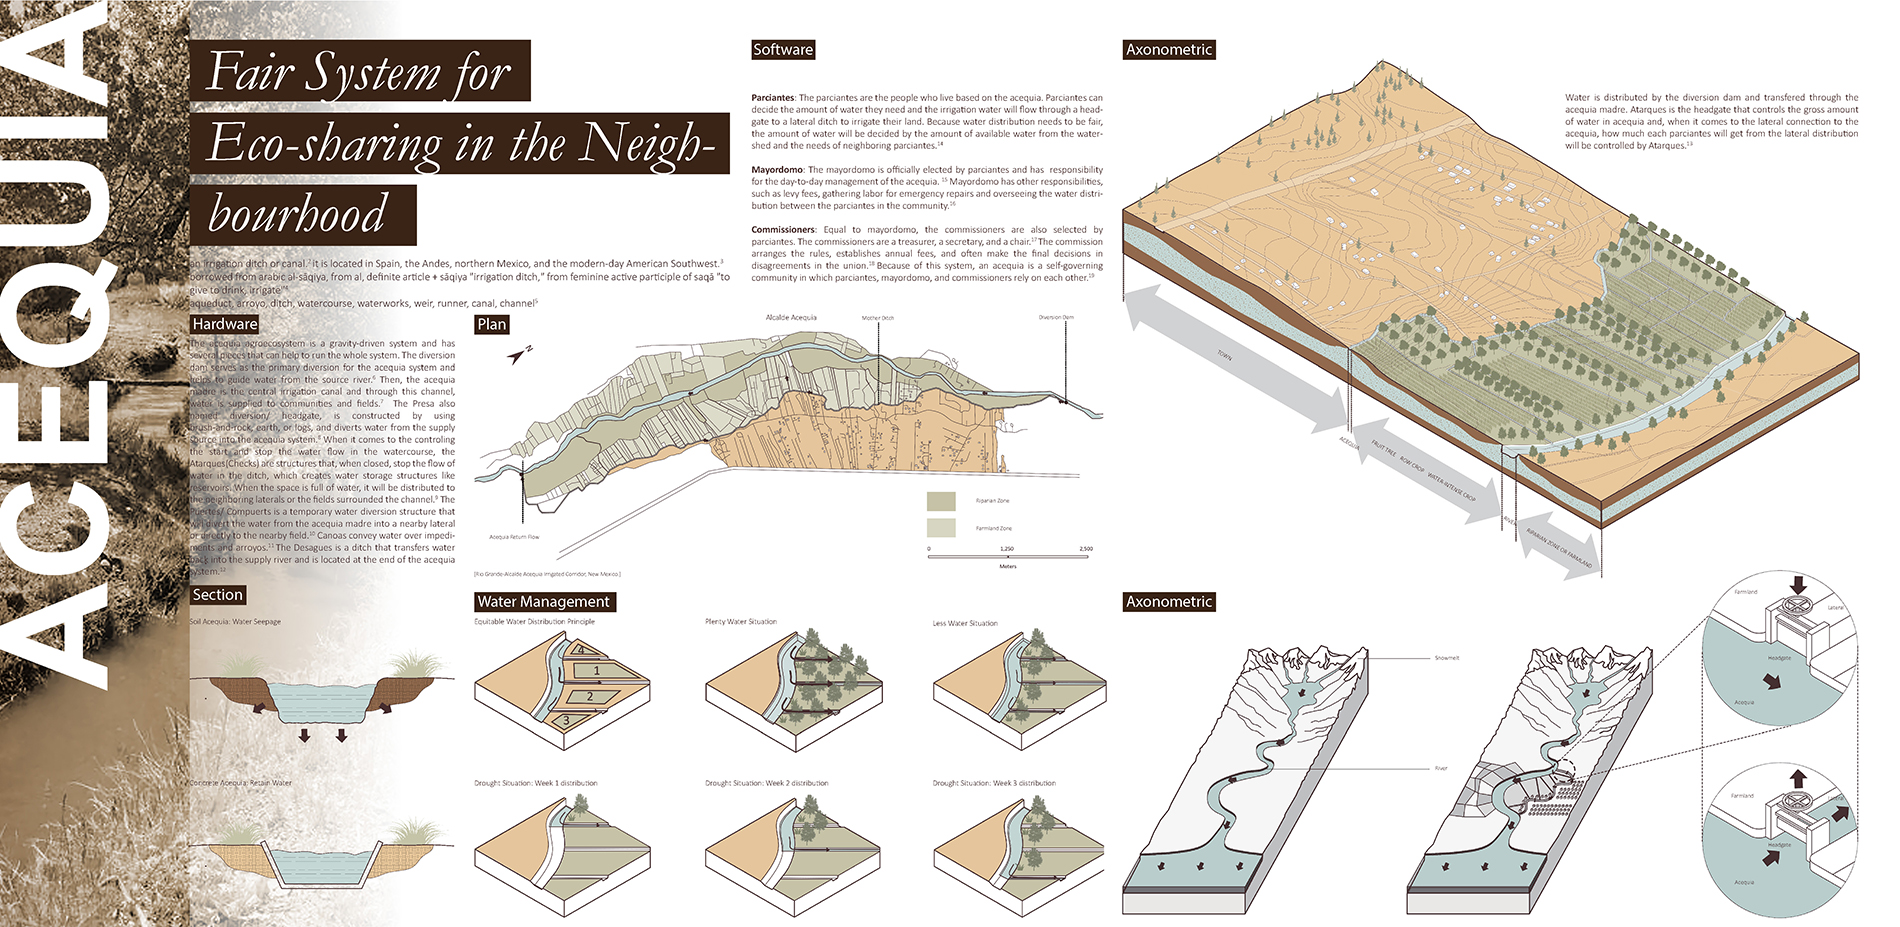 Acequia: Fair System for Ecosharing in the Neighborhood